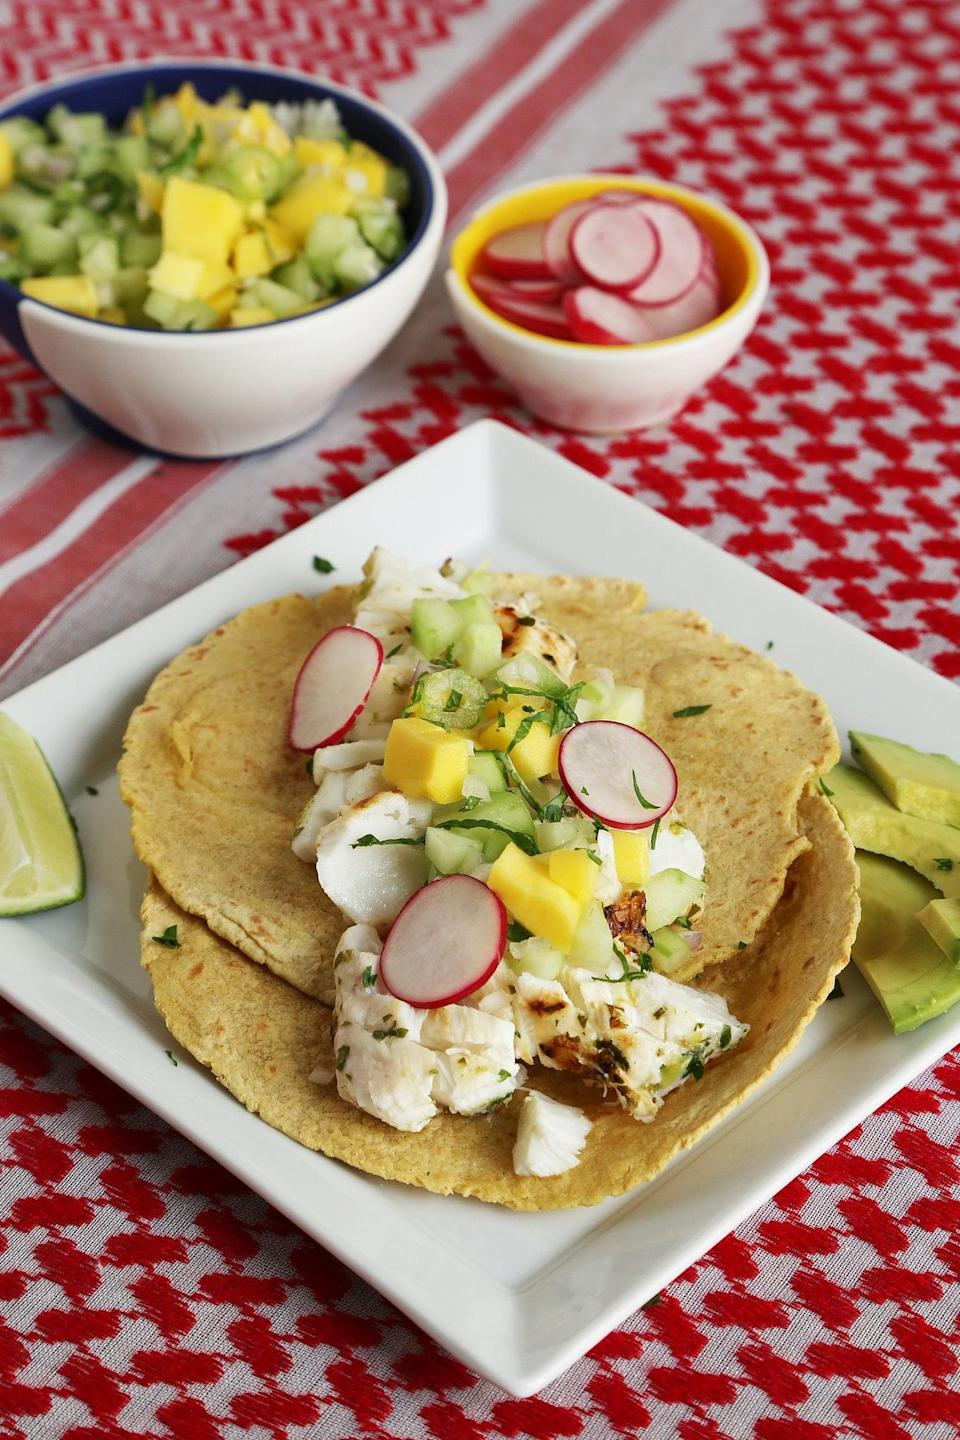 "<p><strong>Get the recipe:</strong> <a href=""http://www.popsugar.com/food/Grilled-Fish-Tacos-Recipe-34643553/"" class=""link rapid-noclick-resp"" rel=""nofollow noopener"" target=""_blank"" data-ylk=""slk:grilled fish tacos"">grilled fish tacos</a></p>"